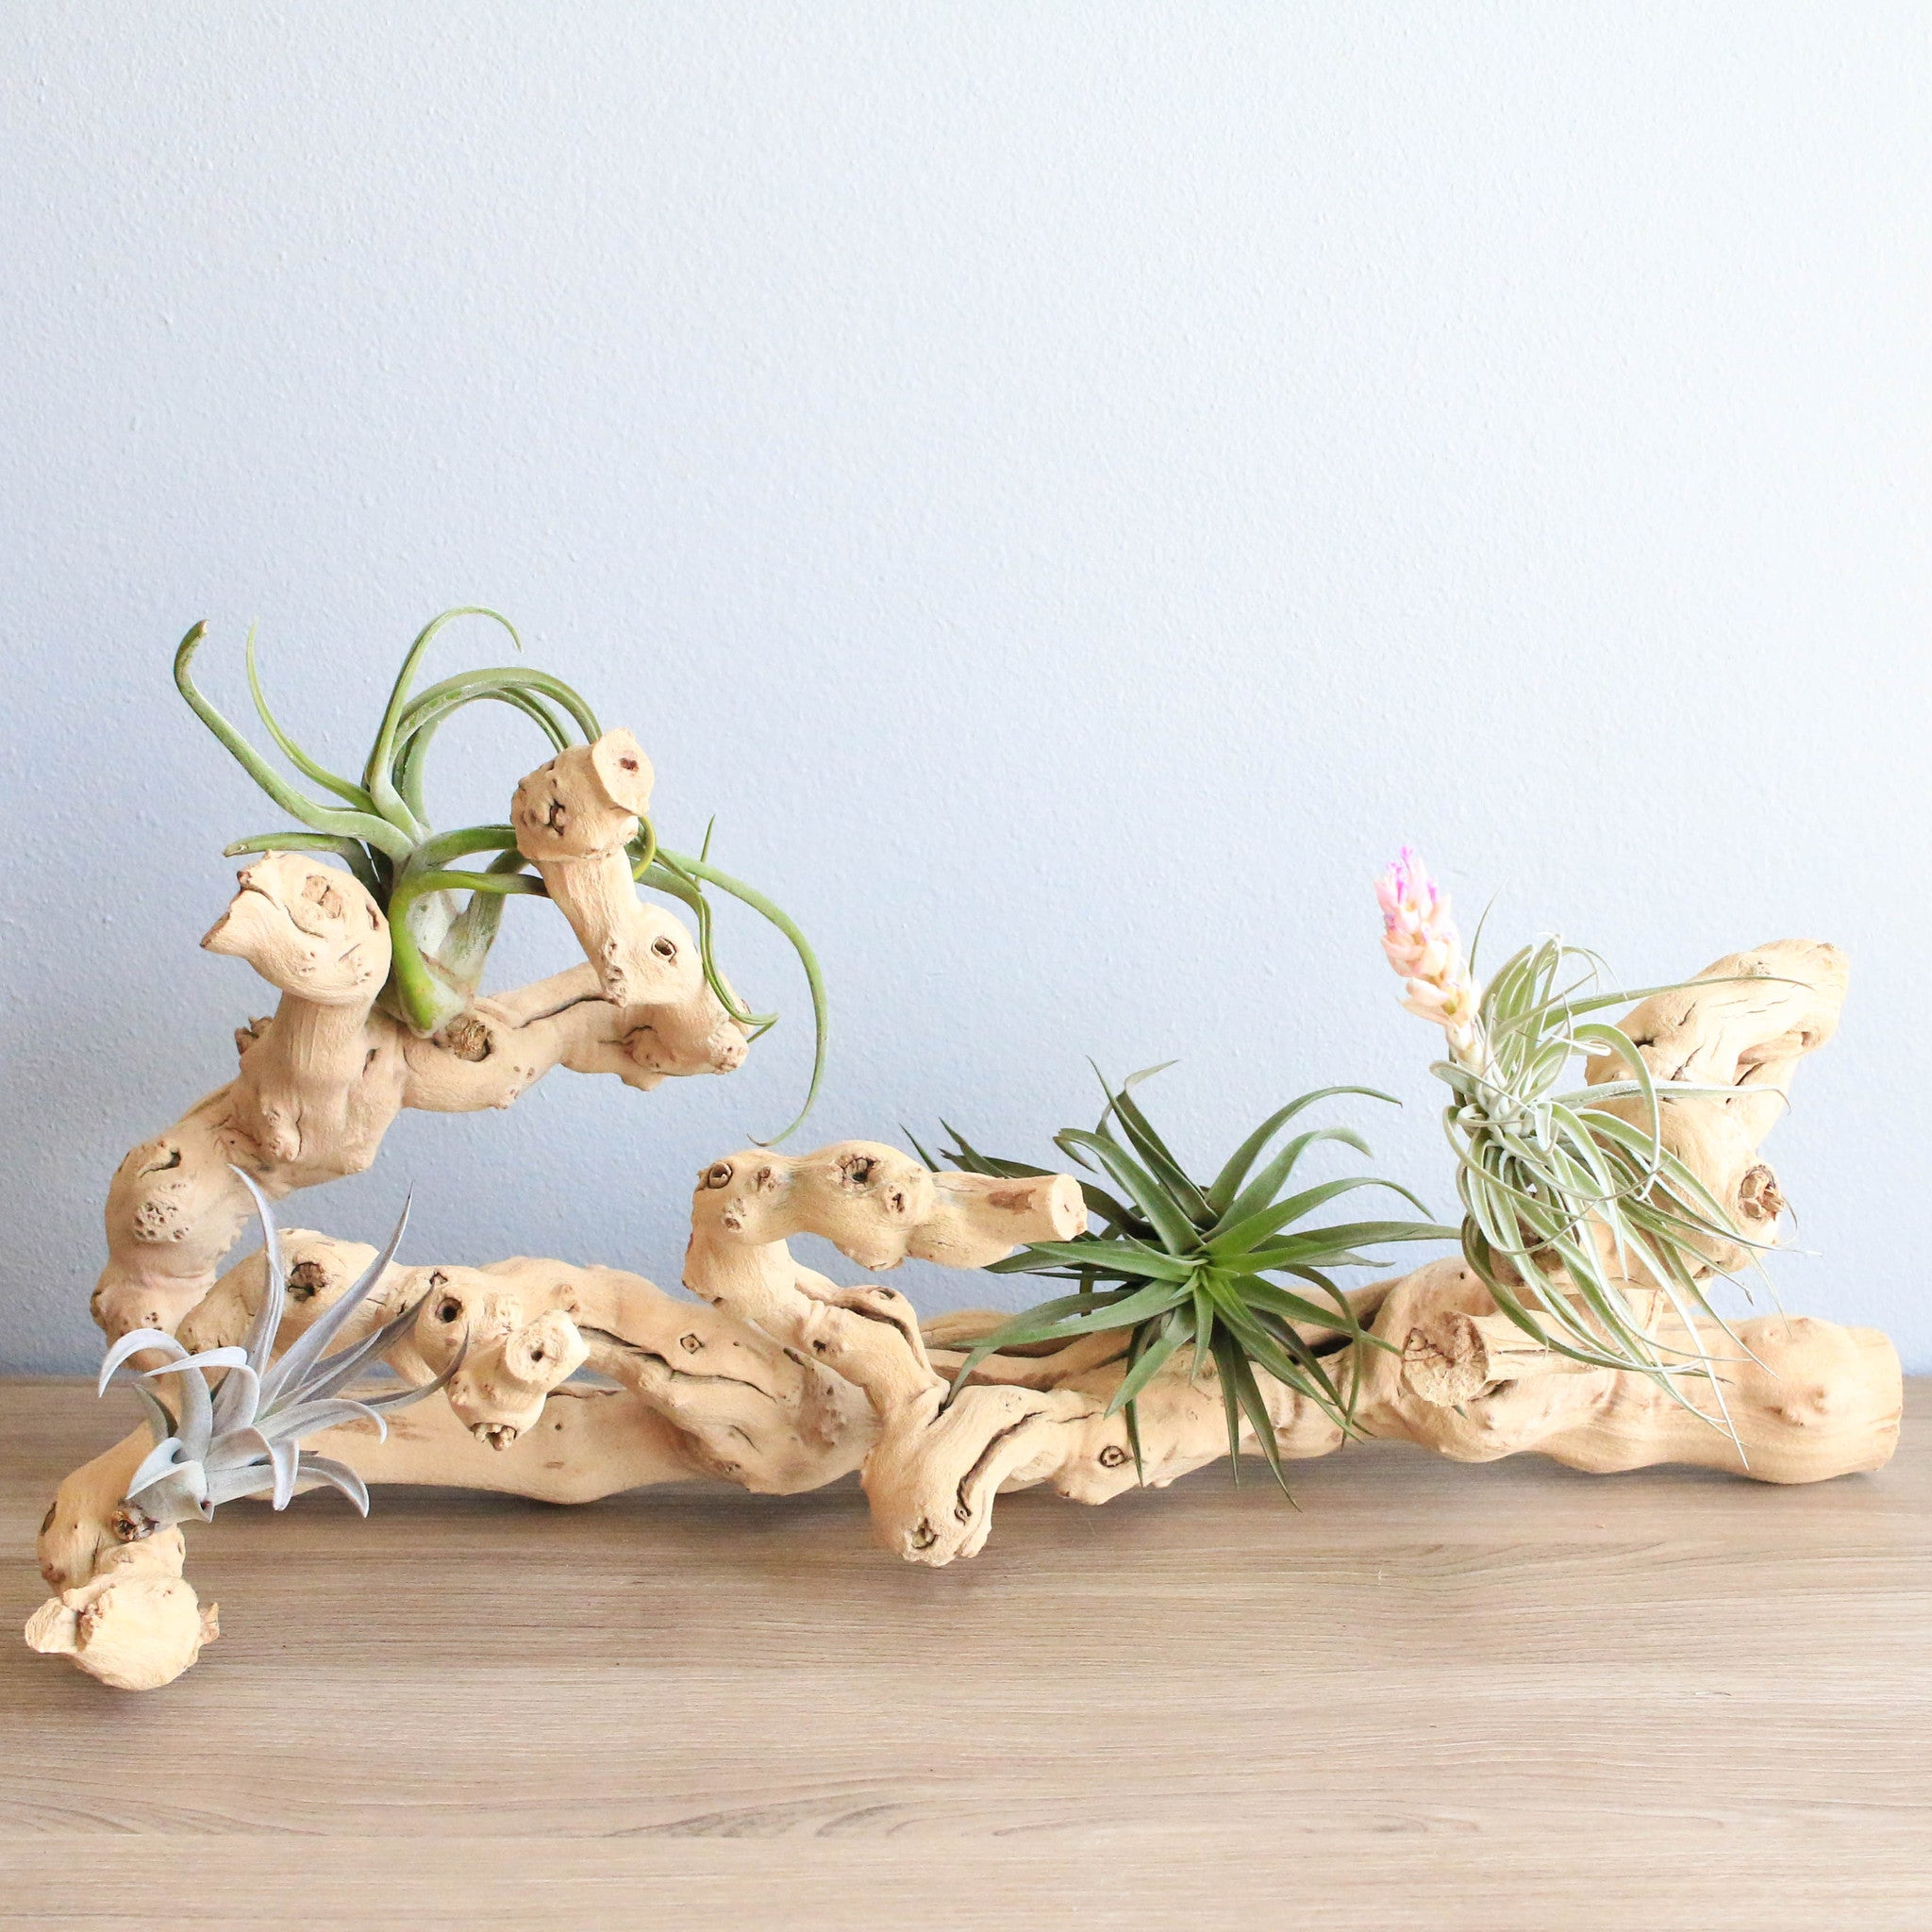 Shop Air Plant Displays For Tillandsia Terrariums Driftwood Ceramic